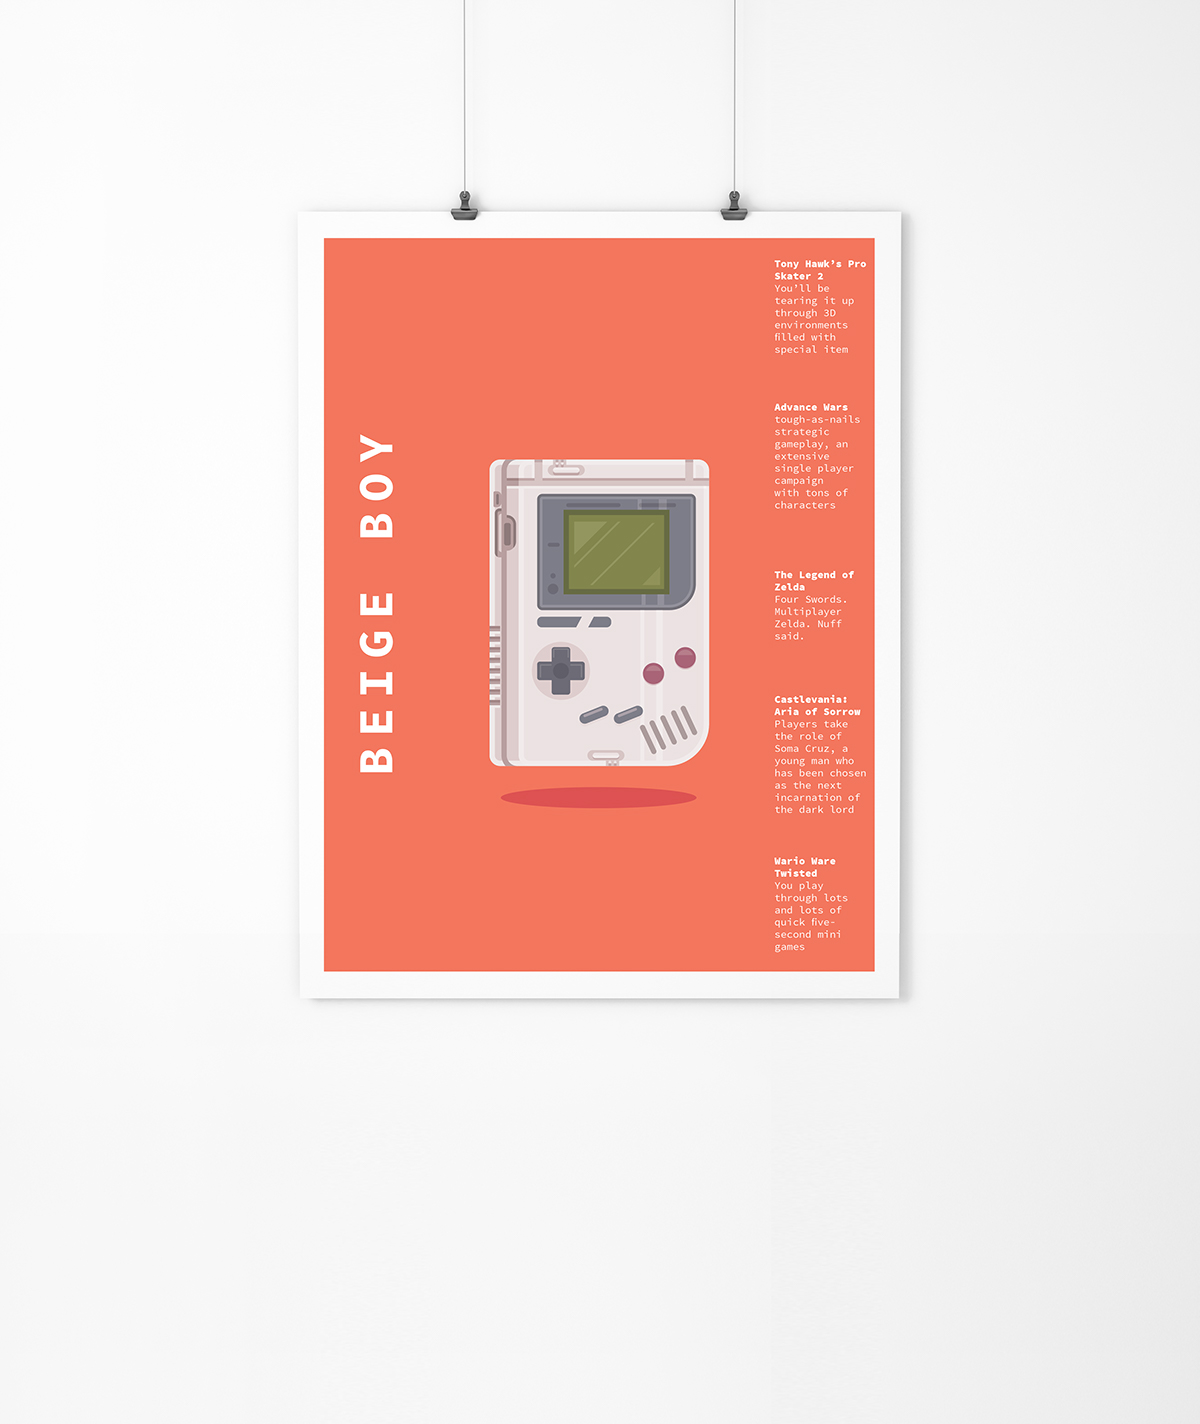 2016 Posters on Behance